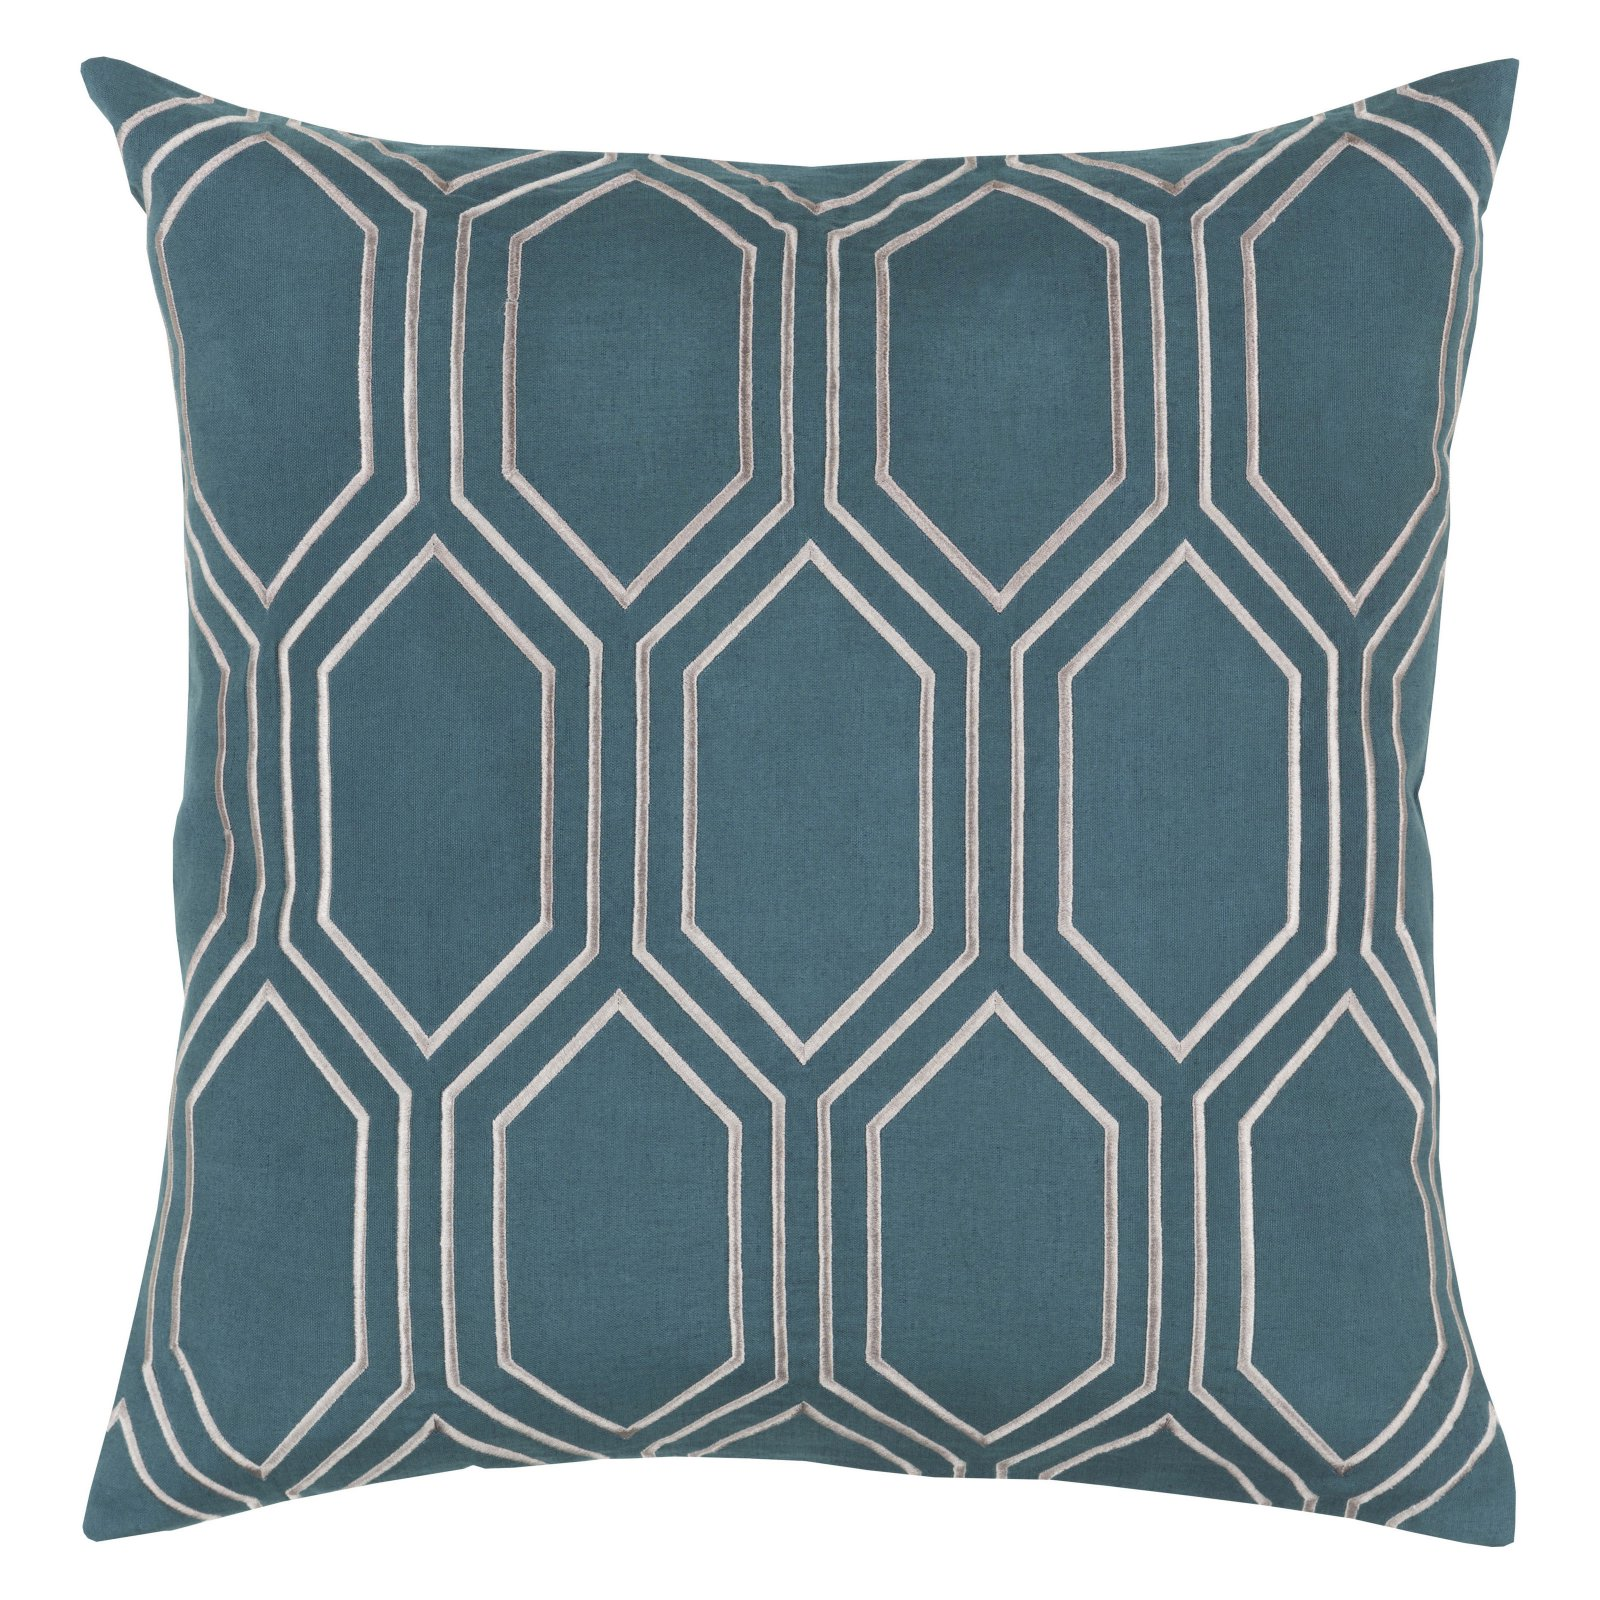 Surya Skyline I Decorative Throw Pillow